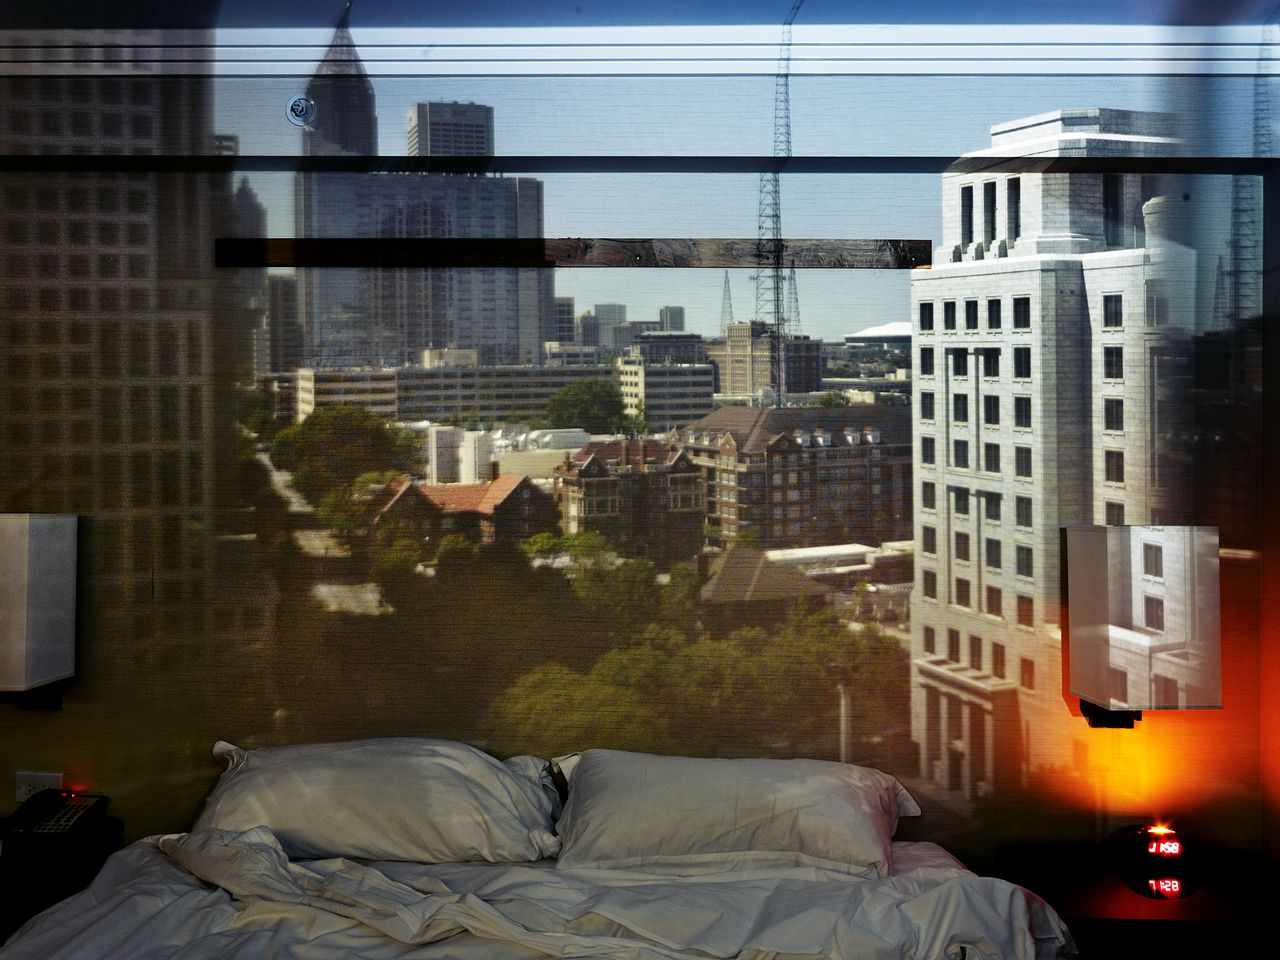 Abelardo Morell, Camera Obscurau2014View Of Atlanta Looking South Down  Peachtree Street In Hotel Room, 2013.